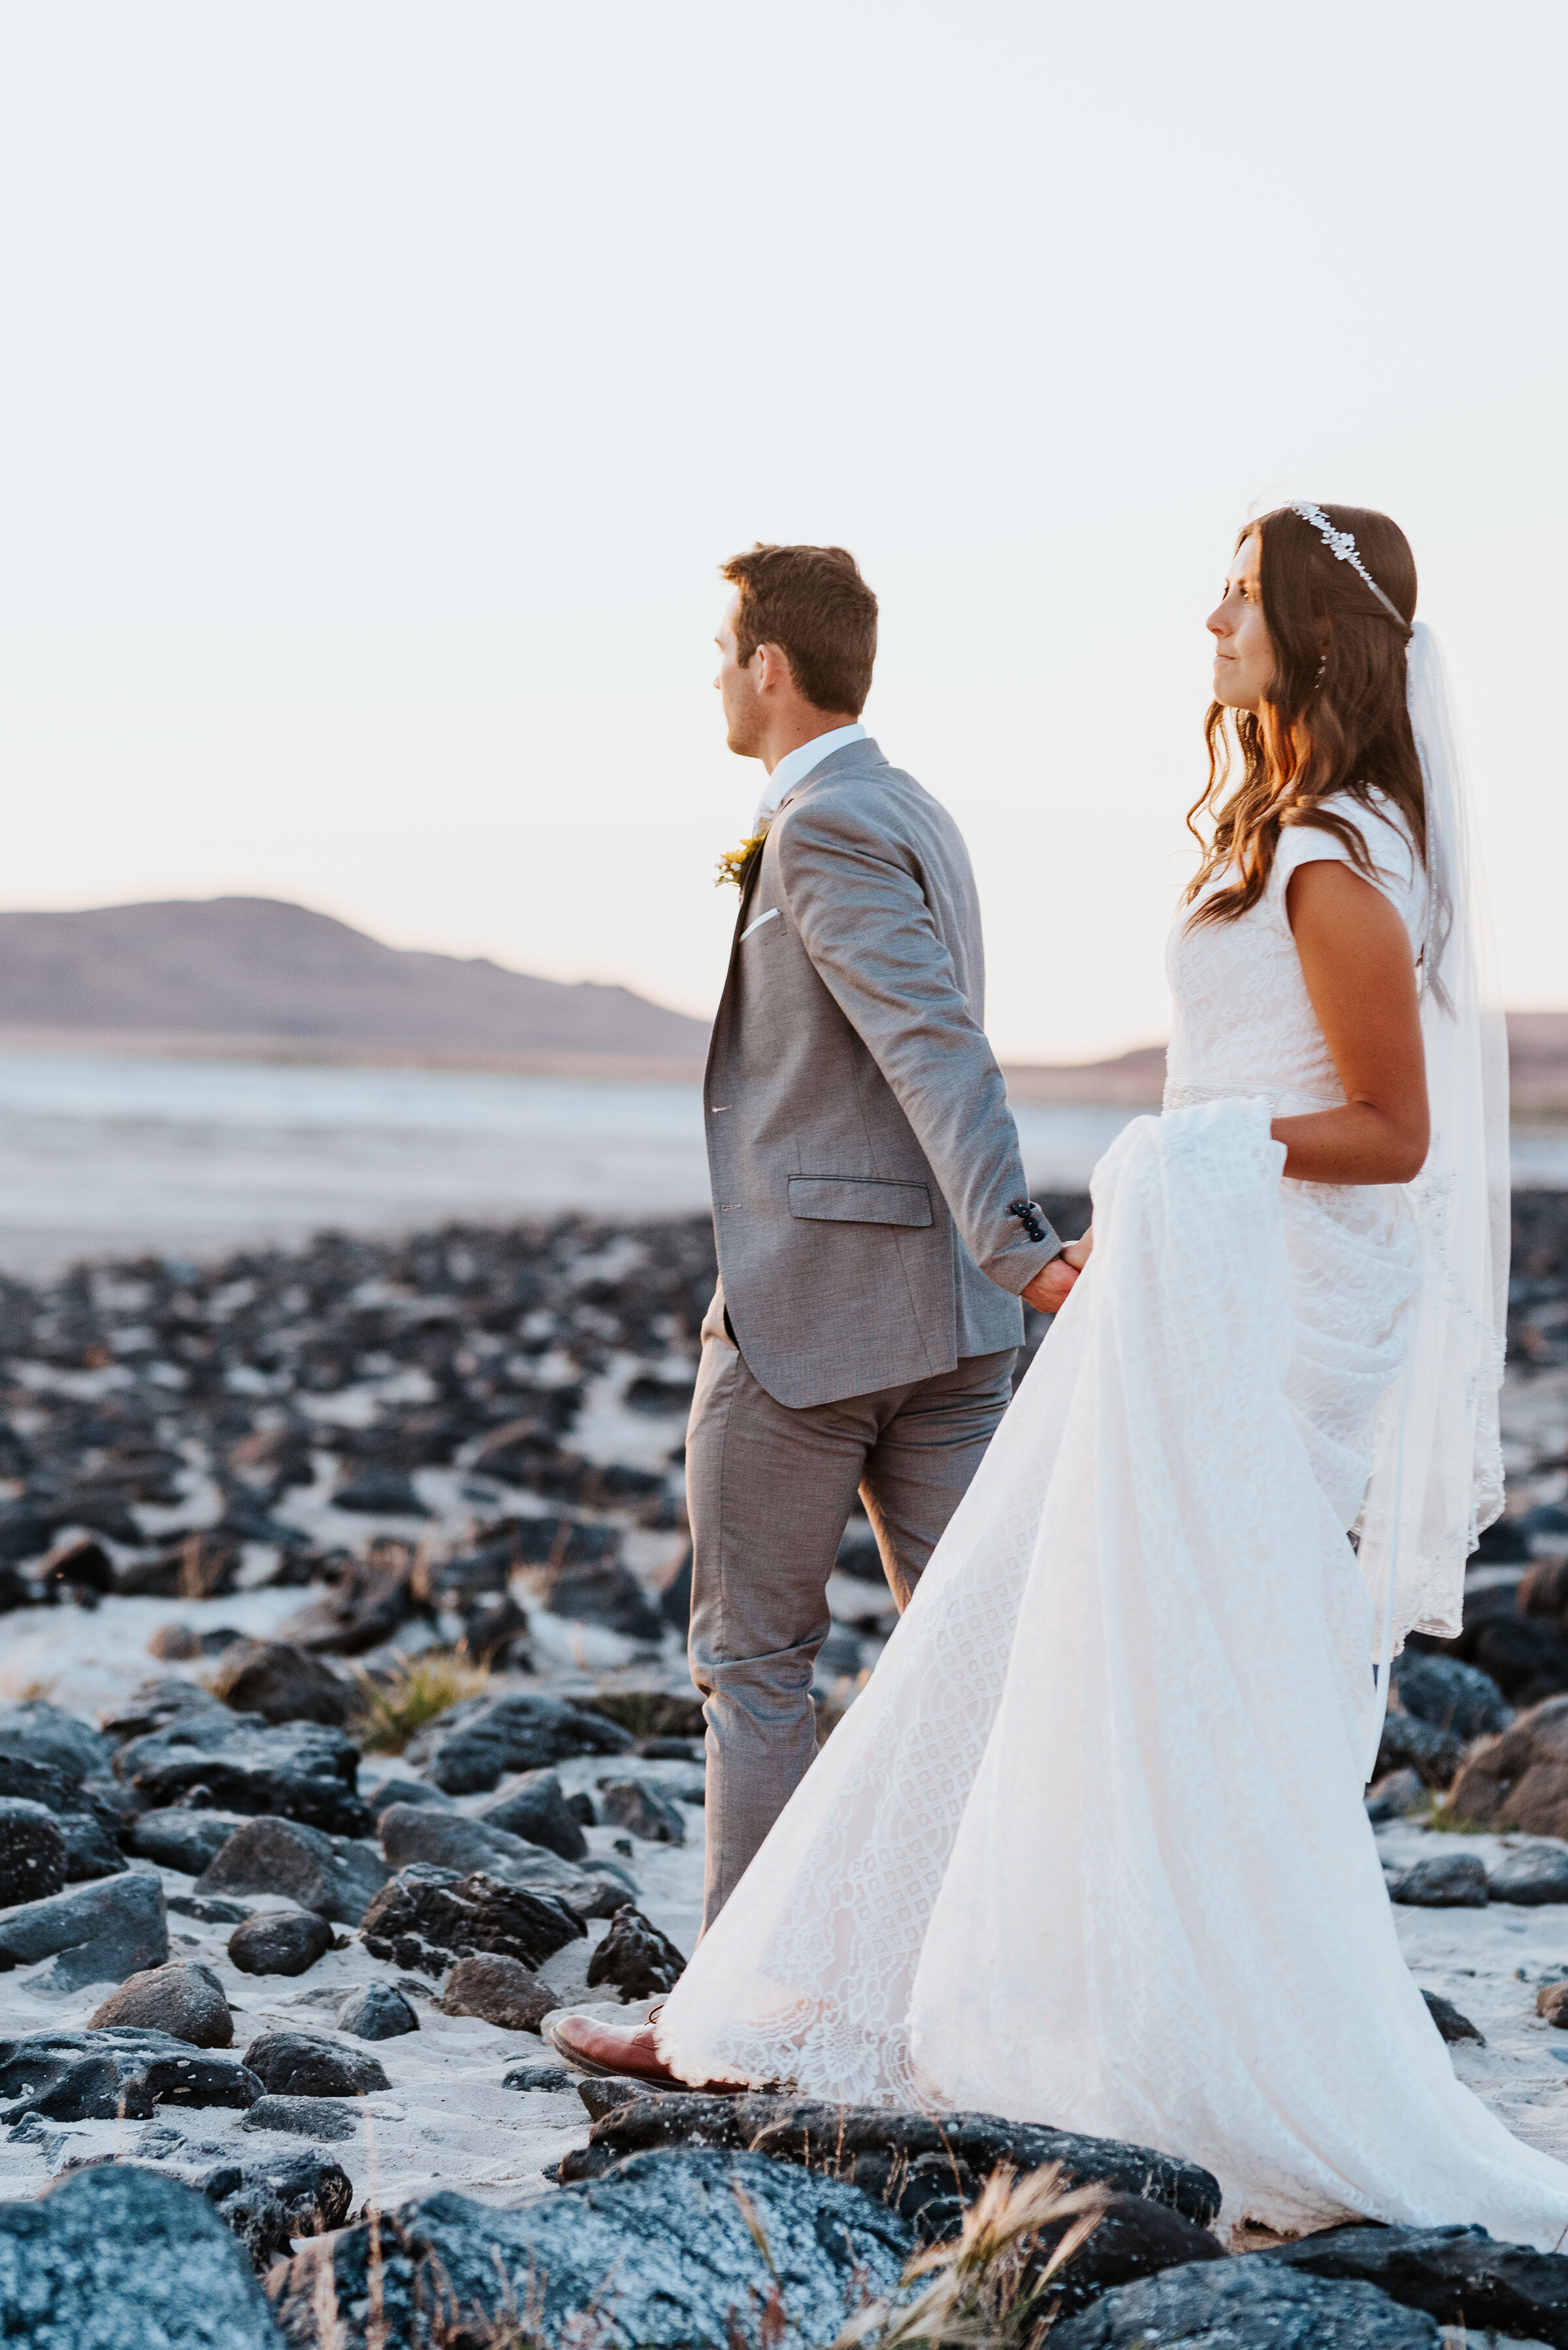 Bride and groom walking across the rocky shore of The Great Salt Lake Spiral Jetty taking in the last of the sunset before it fades behind the mountains in the distance. #spiraljetty #GreatSaltLake #formalsession #SaltFlats #sunsetphotosession #NorthernUtah #weddingphotographer #formalphotographer #brideandgroom #outdoorformals #weddingformalphotography